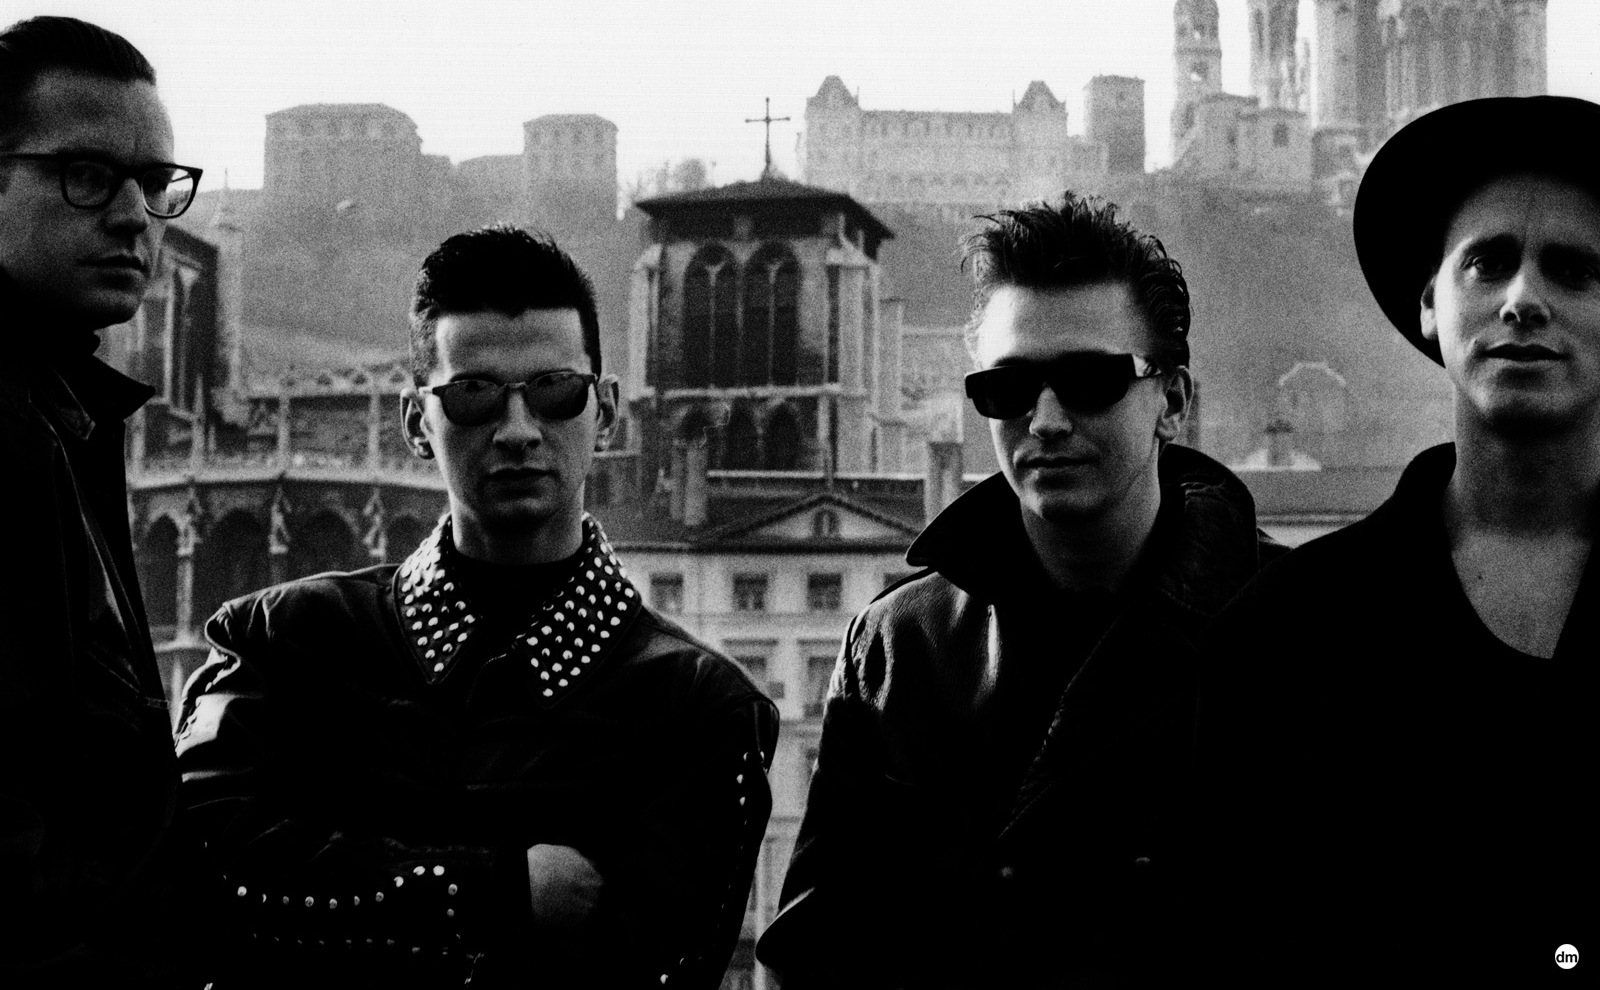 Depeche Mode - PRO-CD-5192 Selections From The Commercially Available Limited Edition Box Sets One And Two